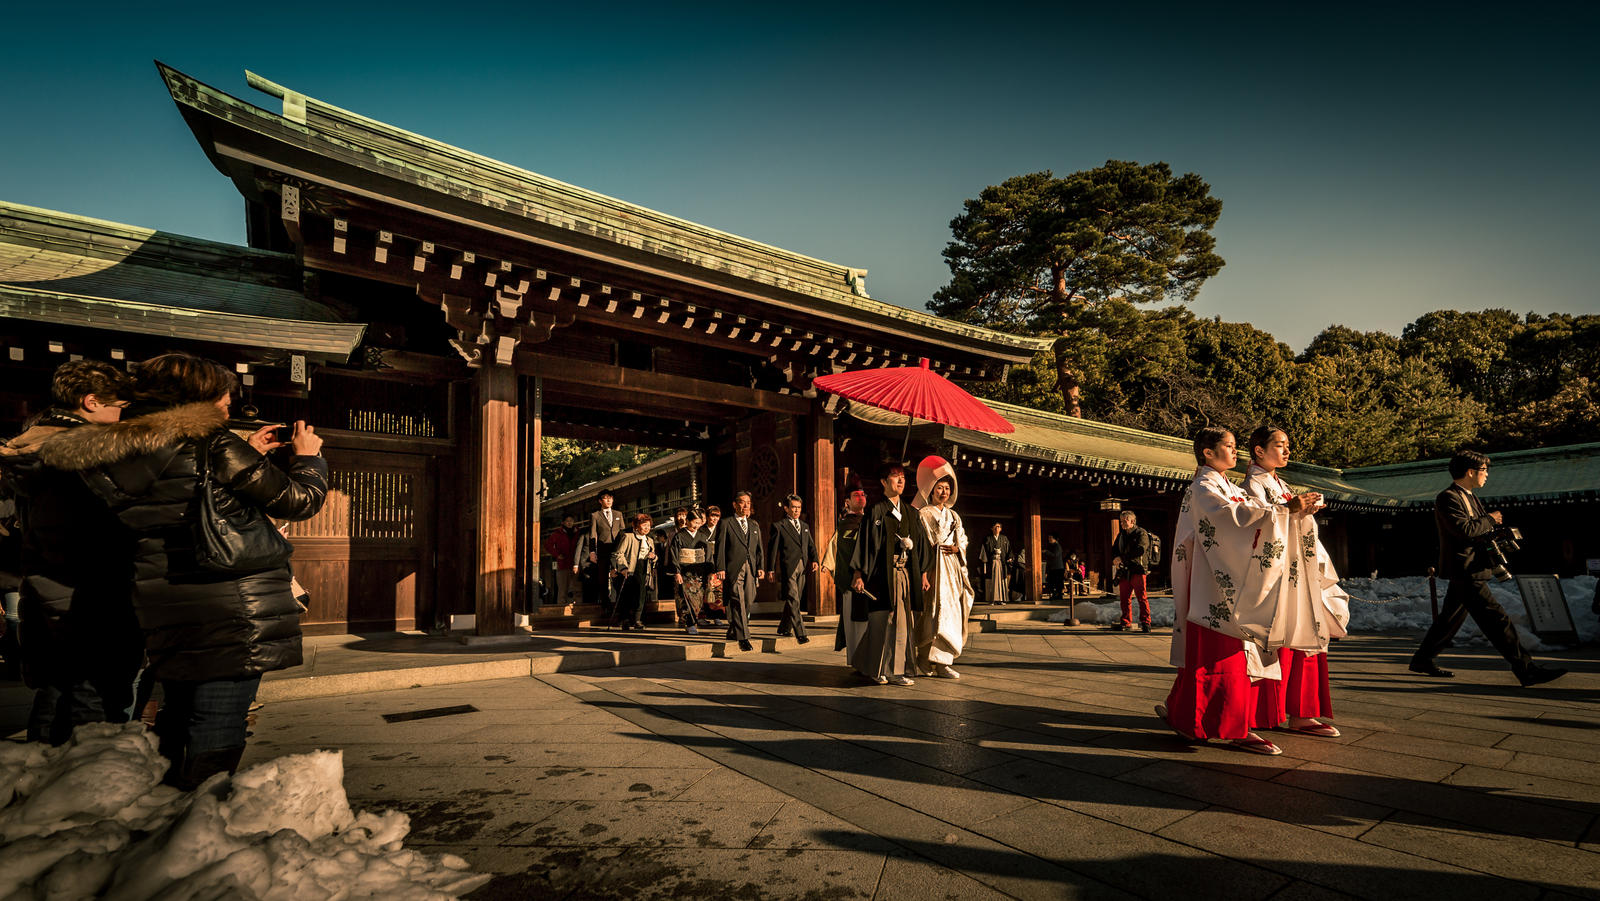 japanese wedding at Meiji Shrine by ChristianRudat